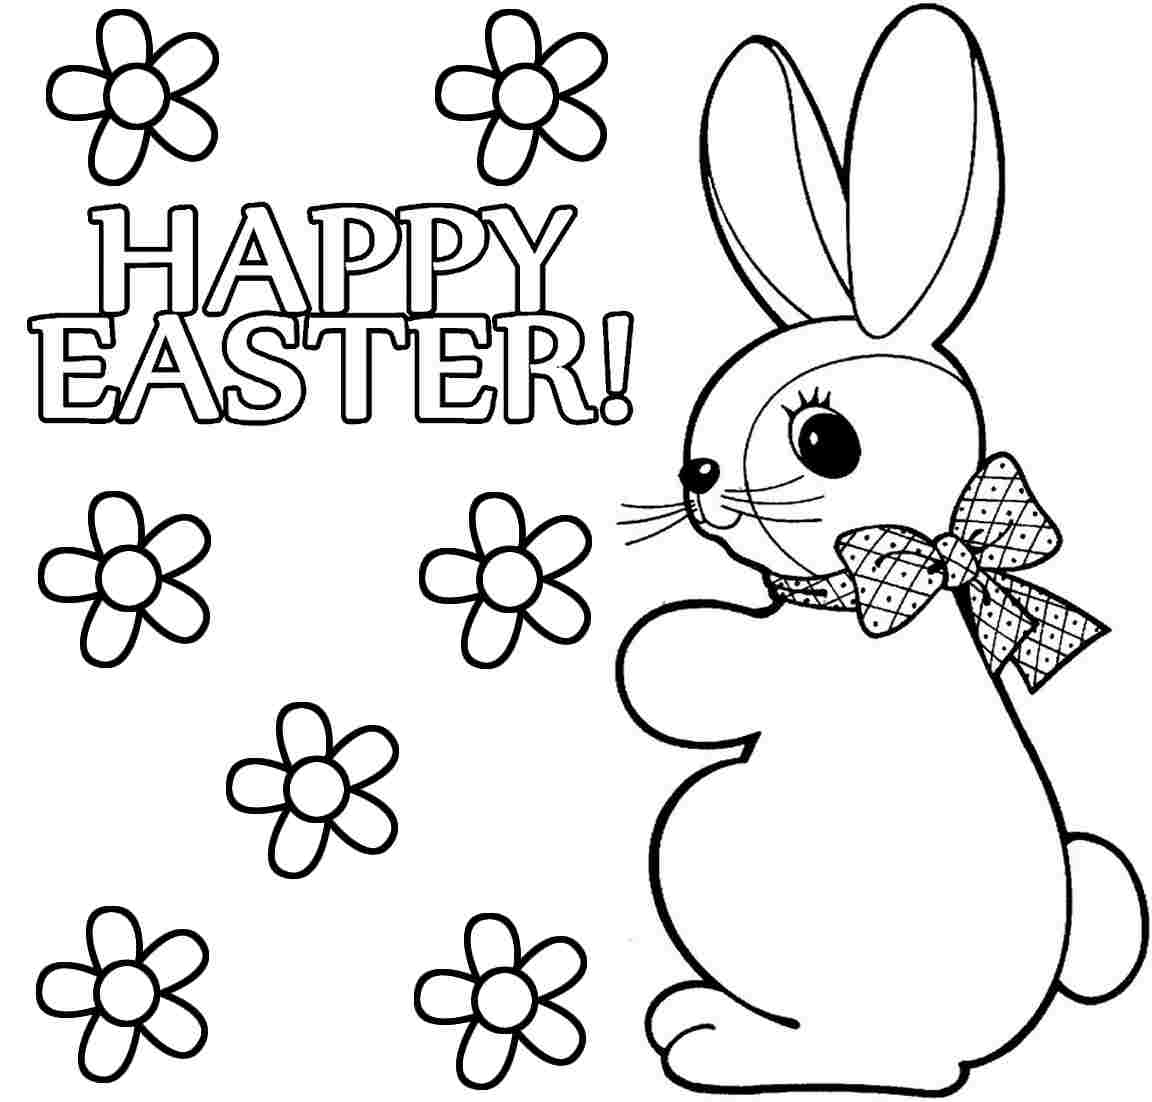 Easter Color Pages Printable Coloring and Coloring Download Of Delighted Bunny Print Out Coloring Pages Easter for Kids Crazy Printable